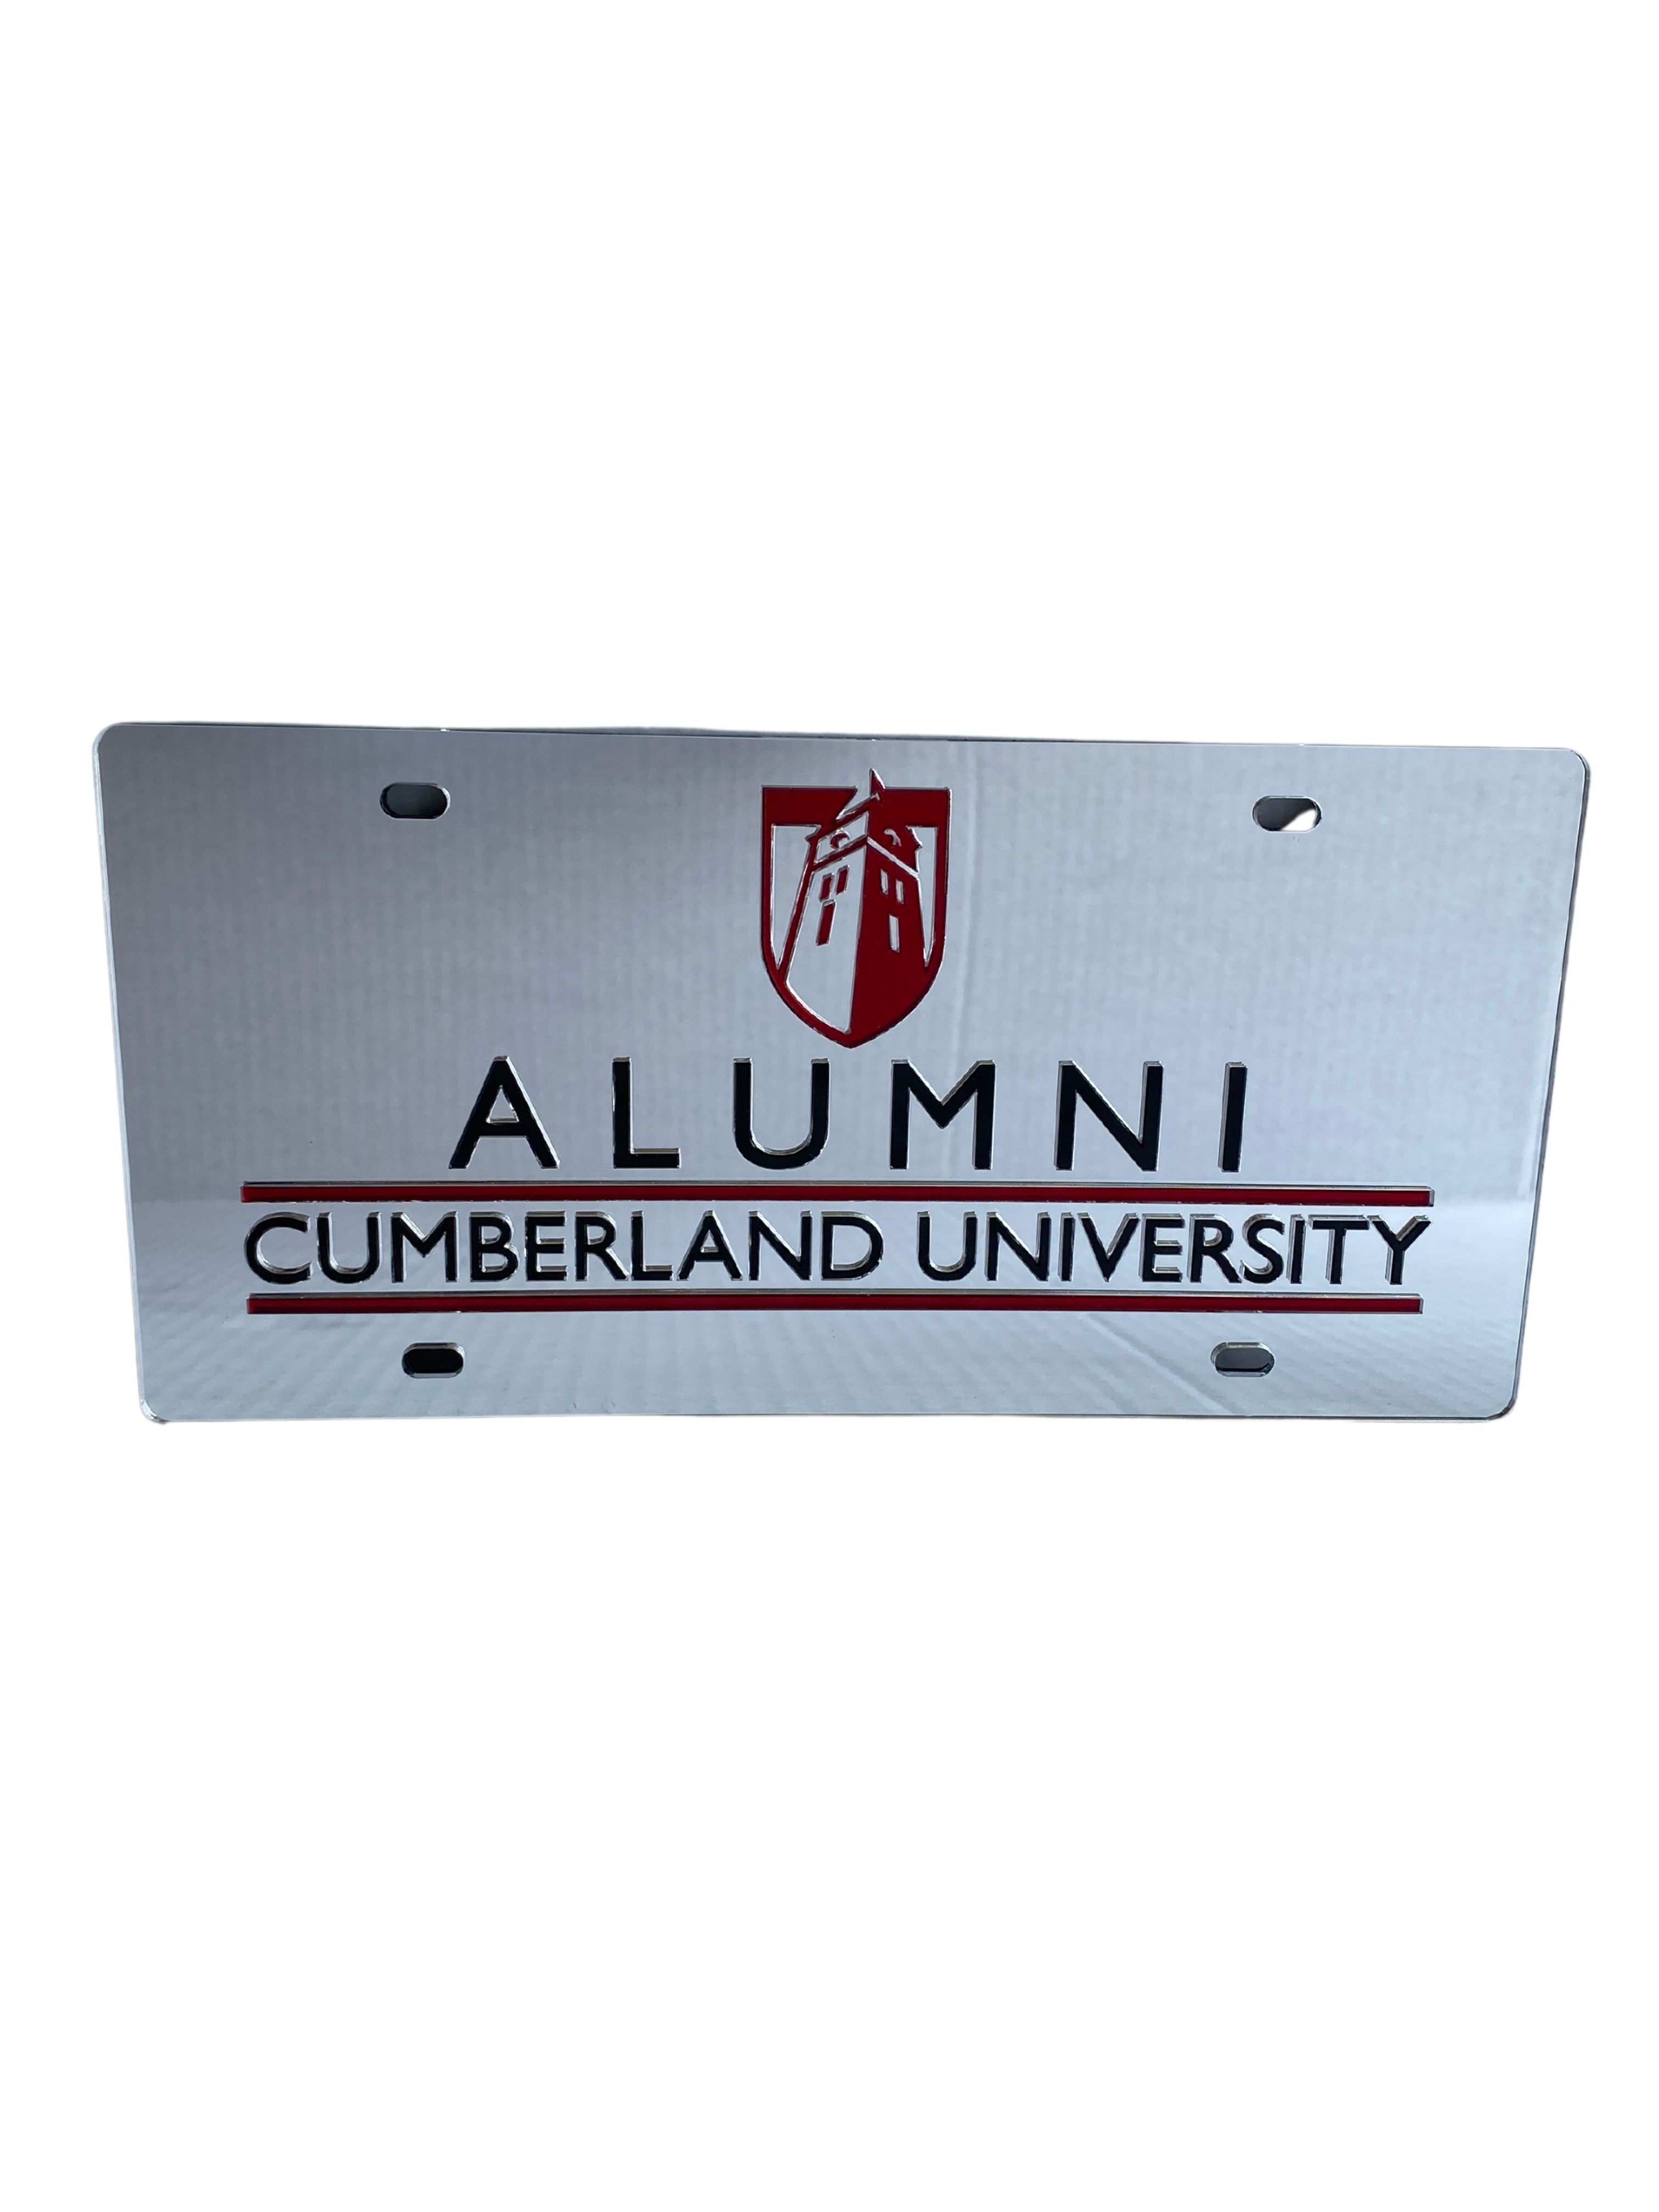 Cumberland University Alumni License Plate